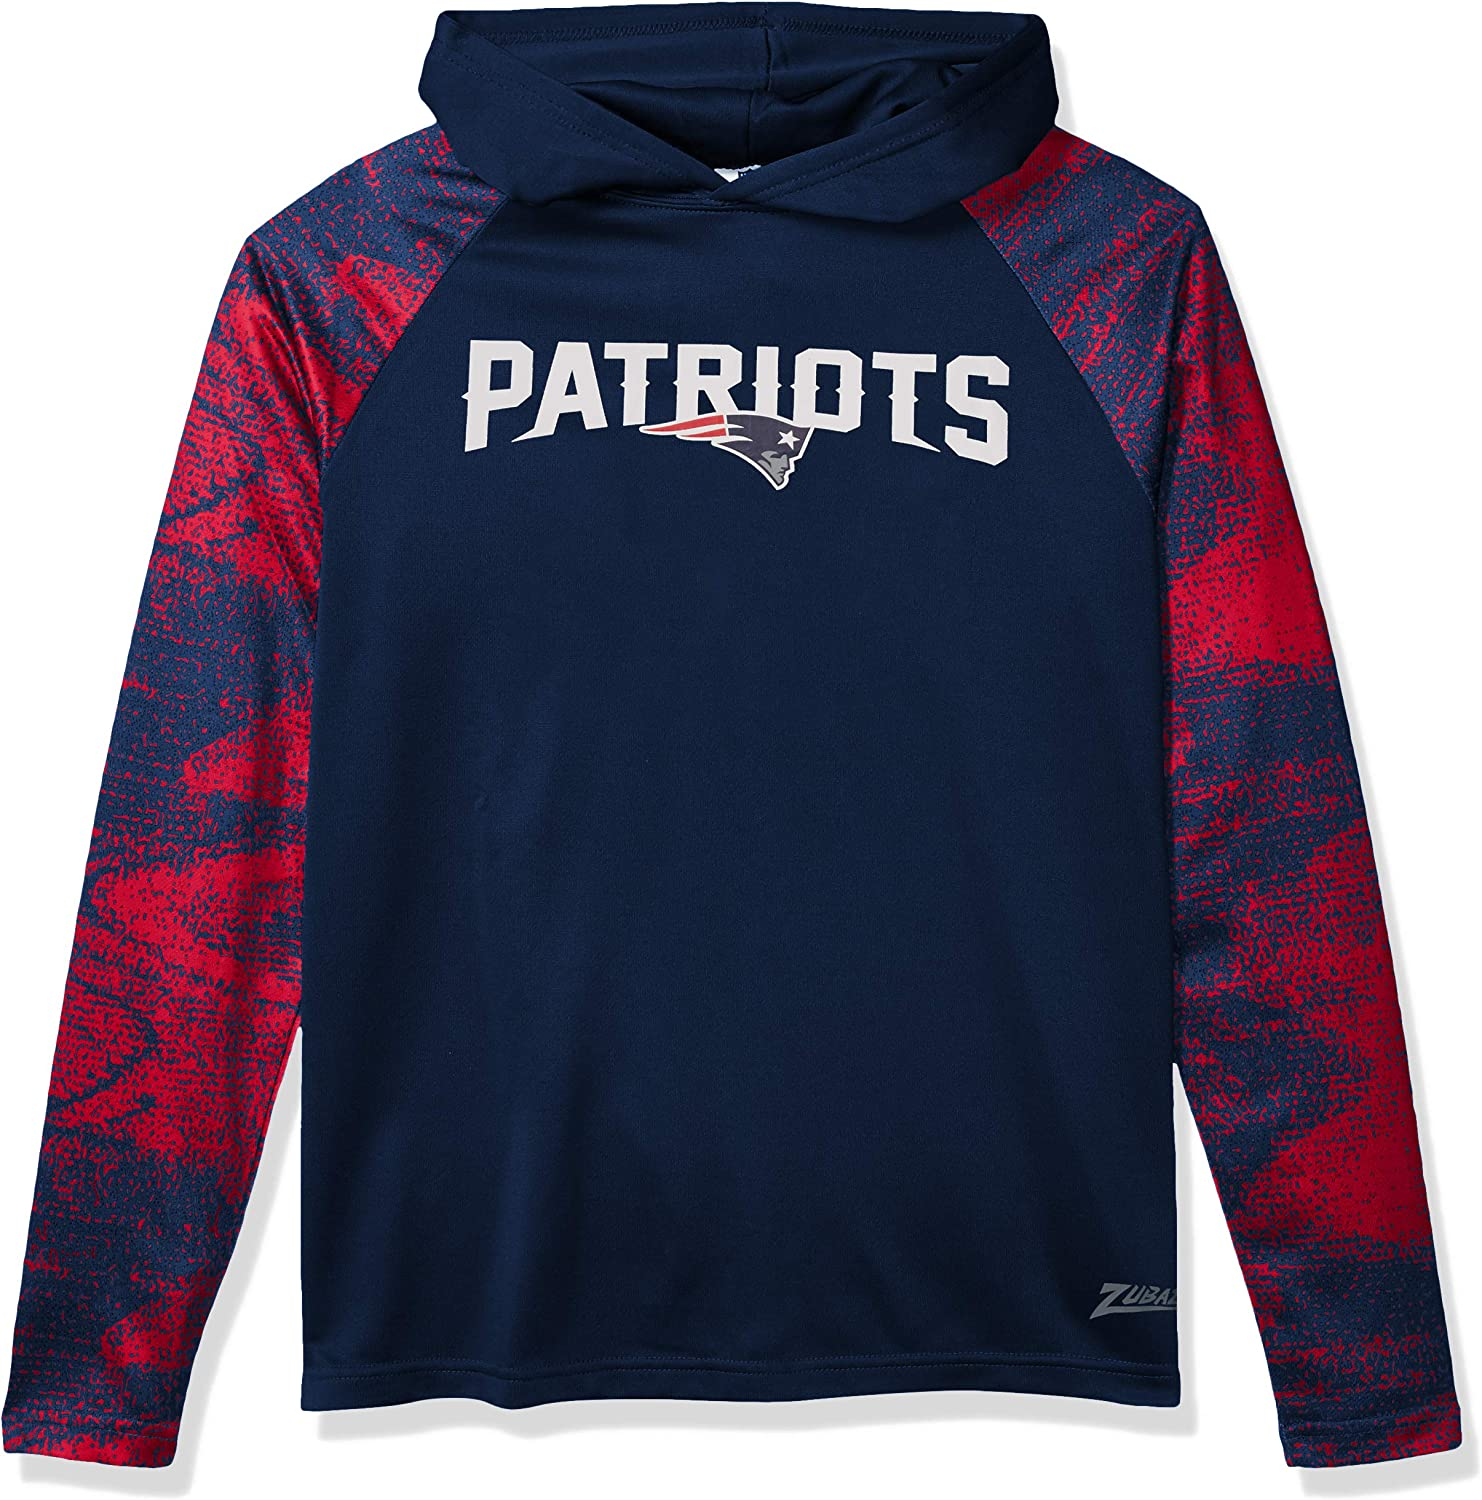 Zubaz Officially Licensed NFL Men's Pullover Hoodie, Team Color